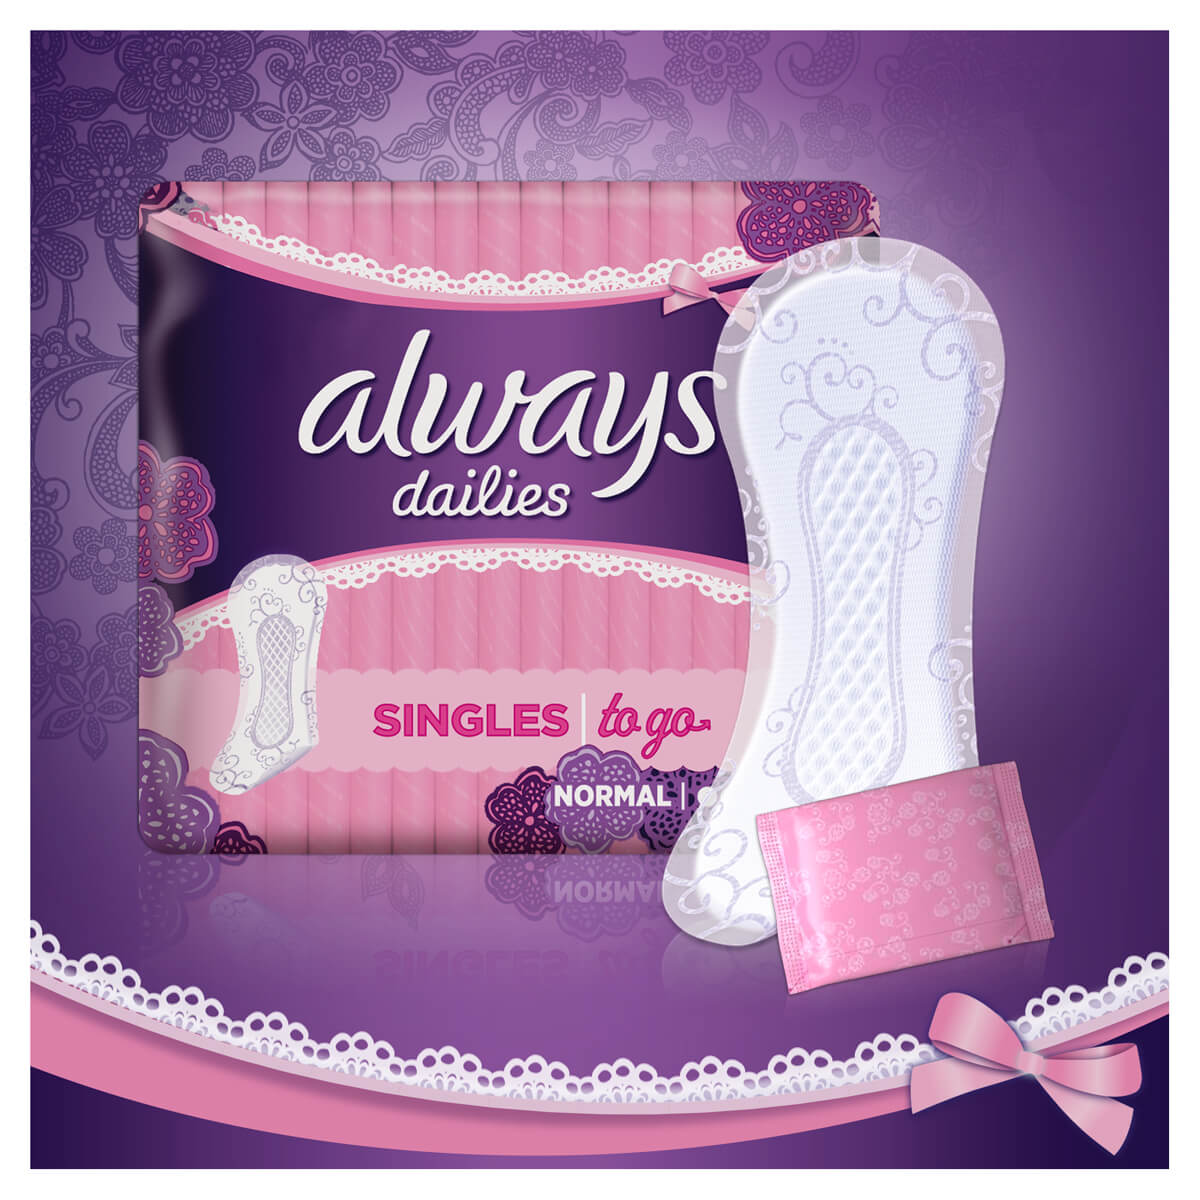 ALWAYS DAILIES Singles To Go Normal Pantyliners